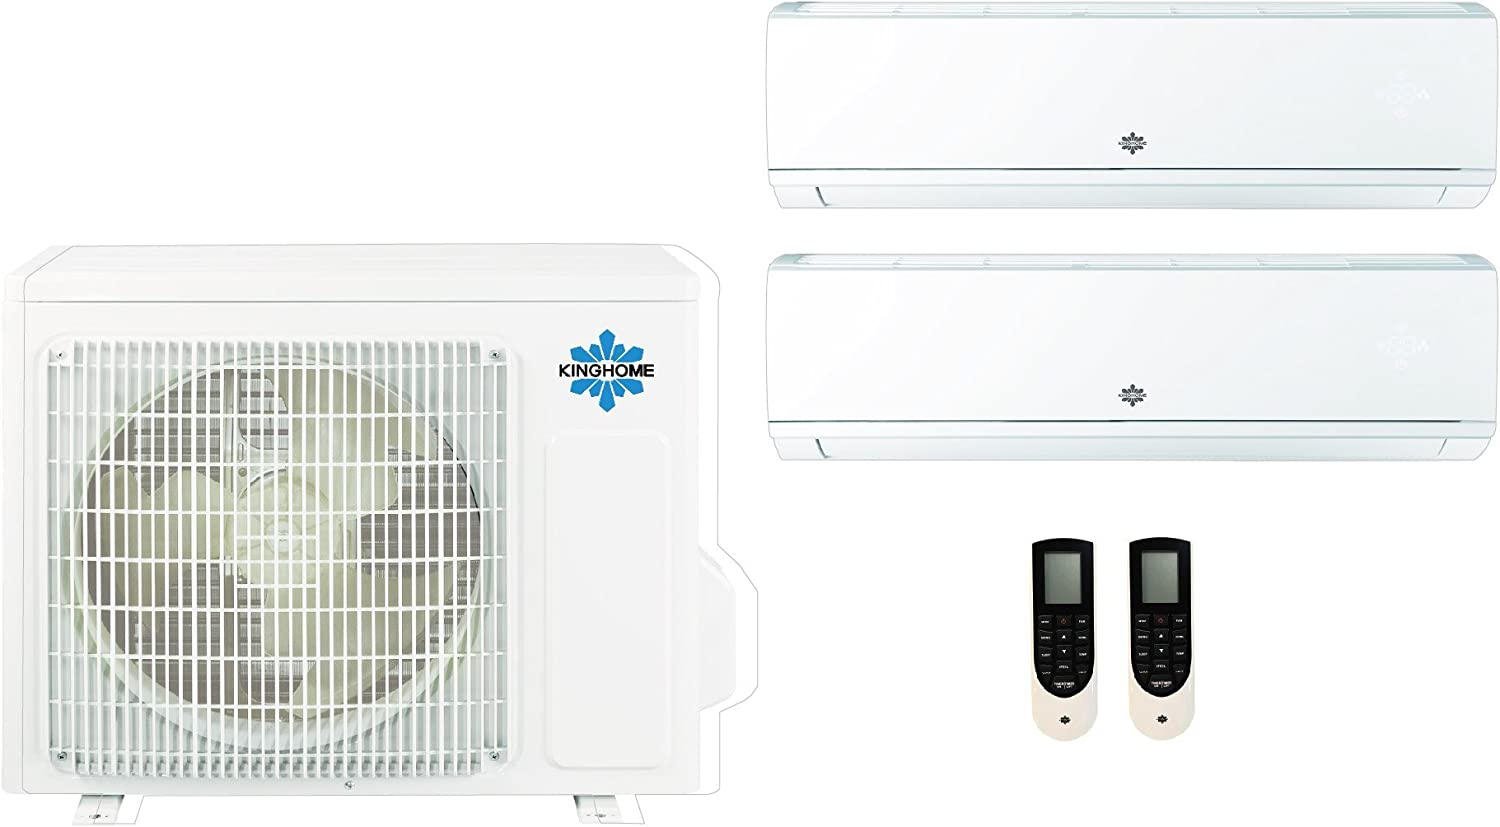 KINGHOME 4 Sales Combos mini split system with heat pump, heating and cooling